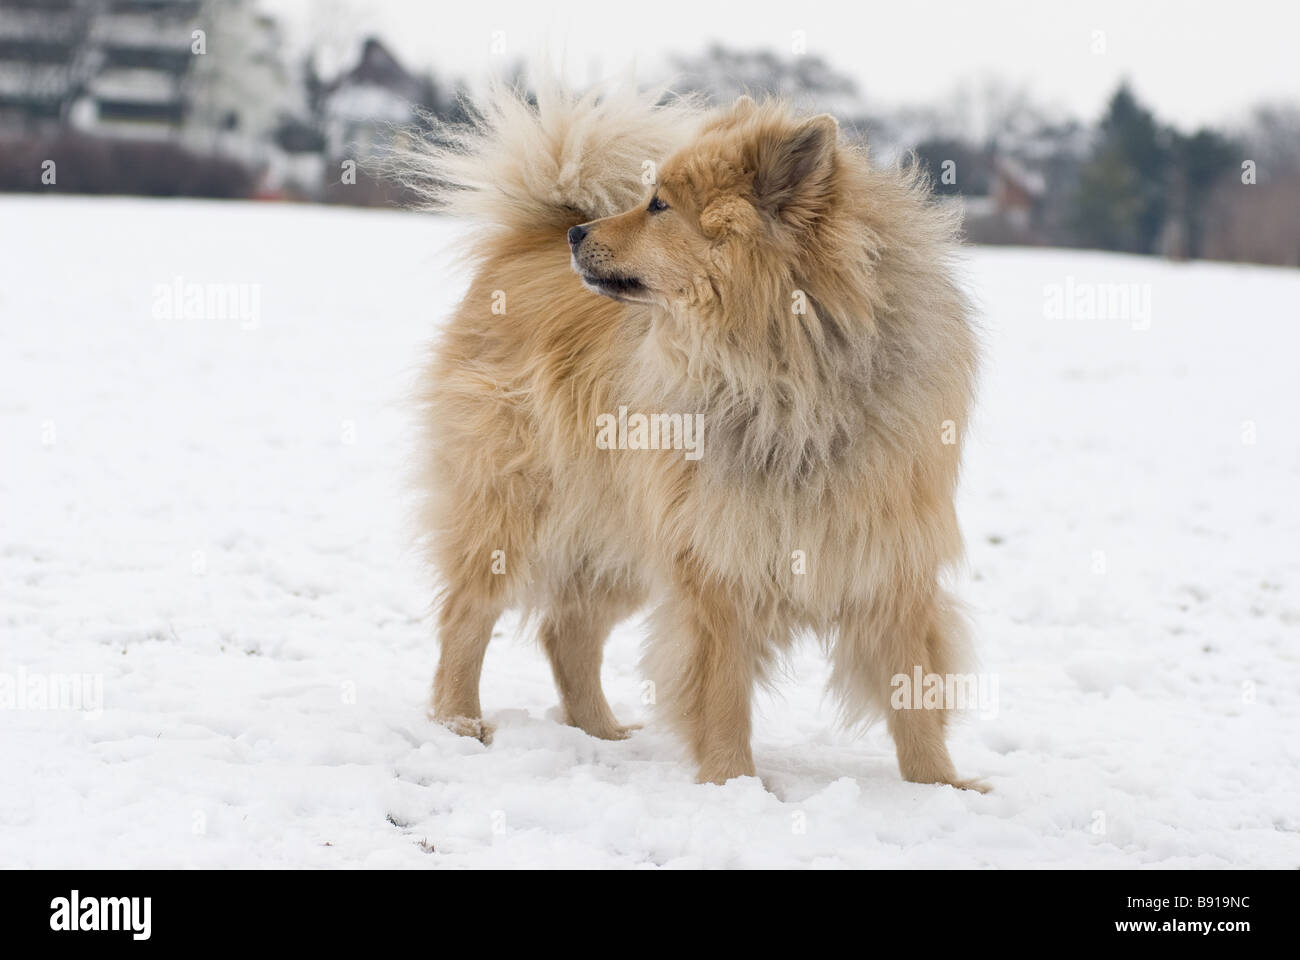 a brown eurasier dog looking at something distant in a snowy background - Stock Image